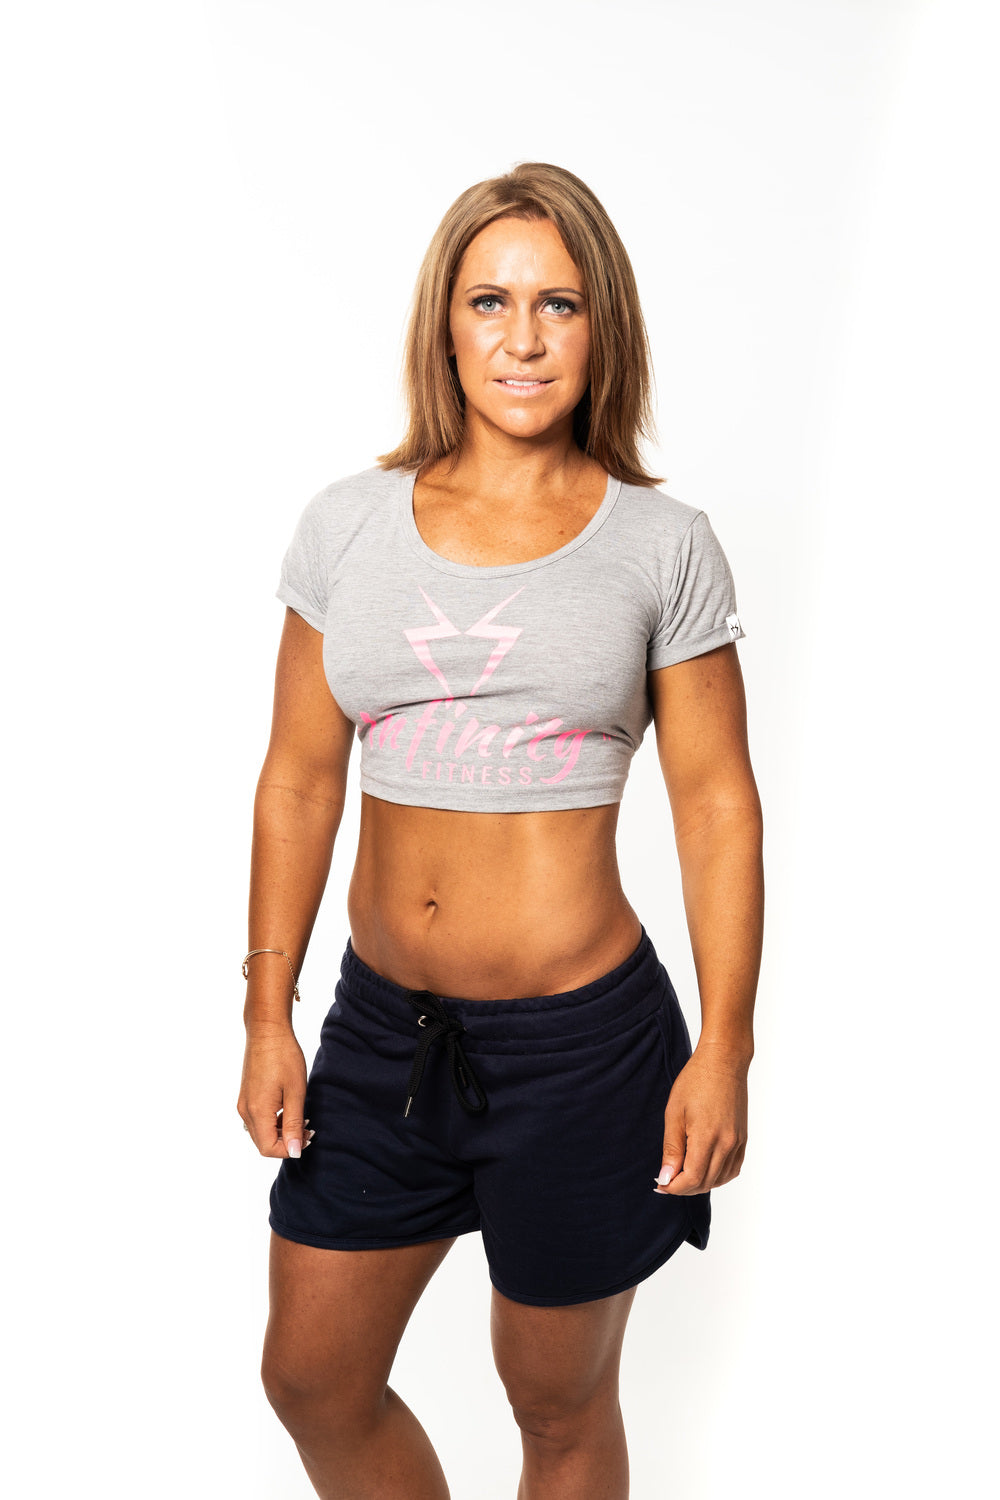 Ladies Cropped T shirt